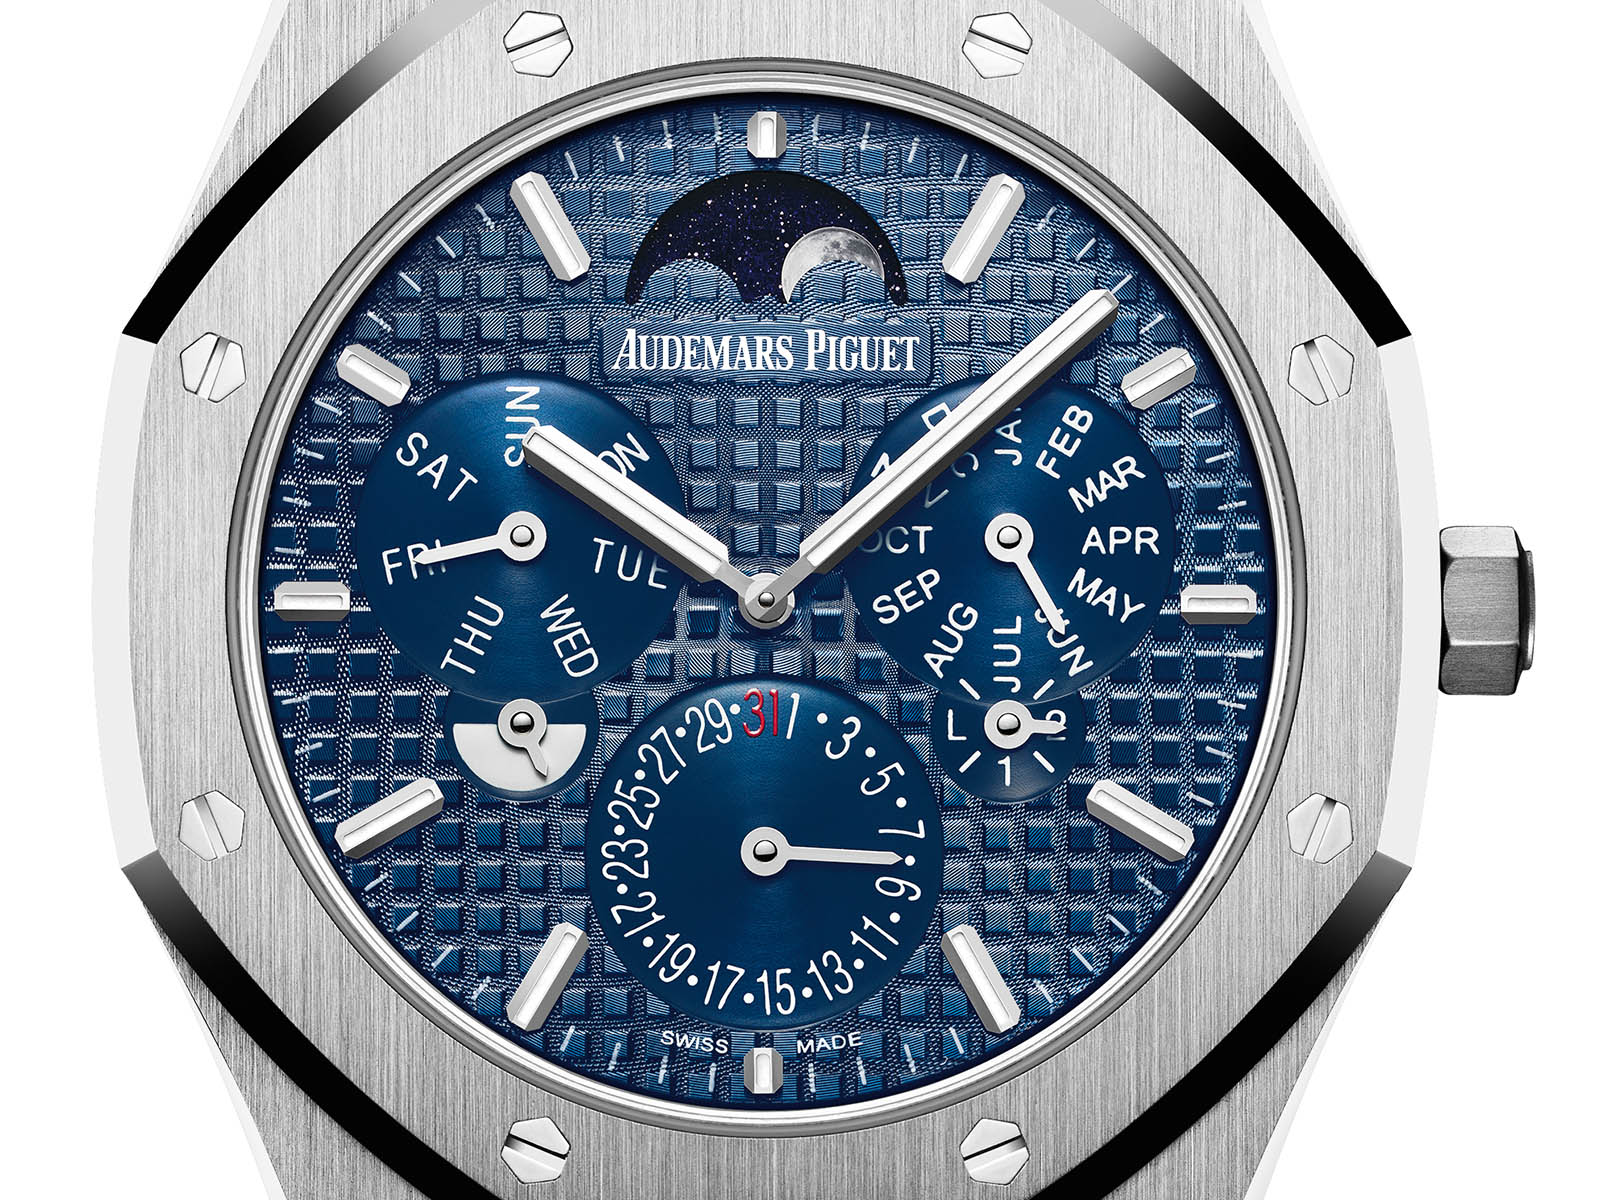 audemars-piguet-royal-oak-rd-2-perpetual-chronograph-ultra-thin-5.jpg